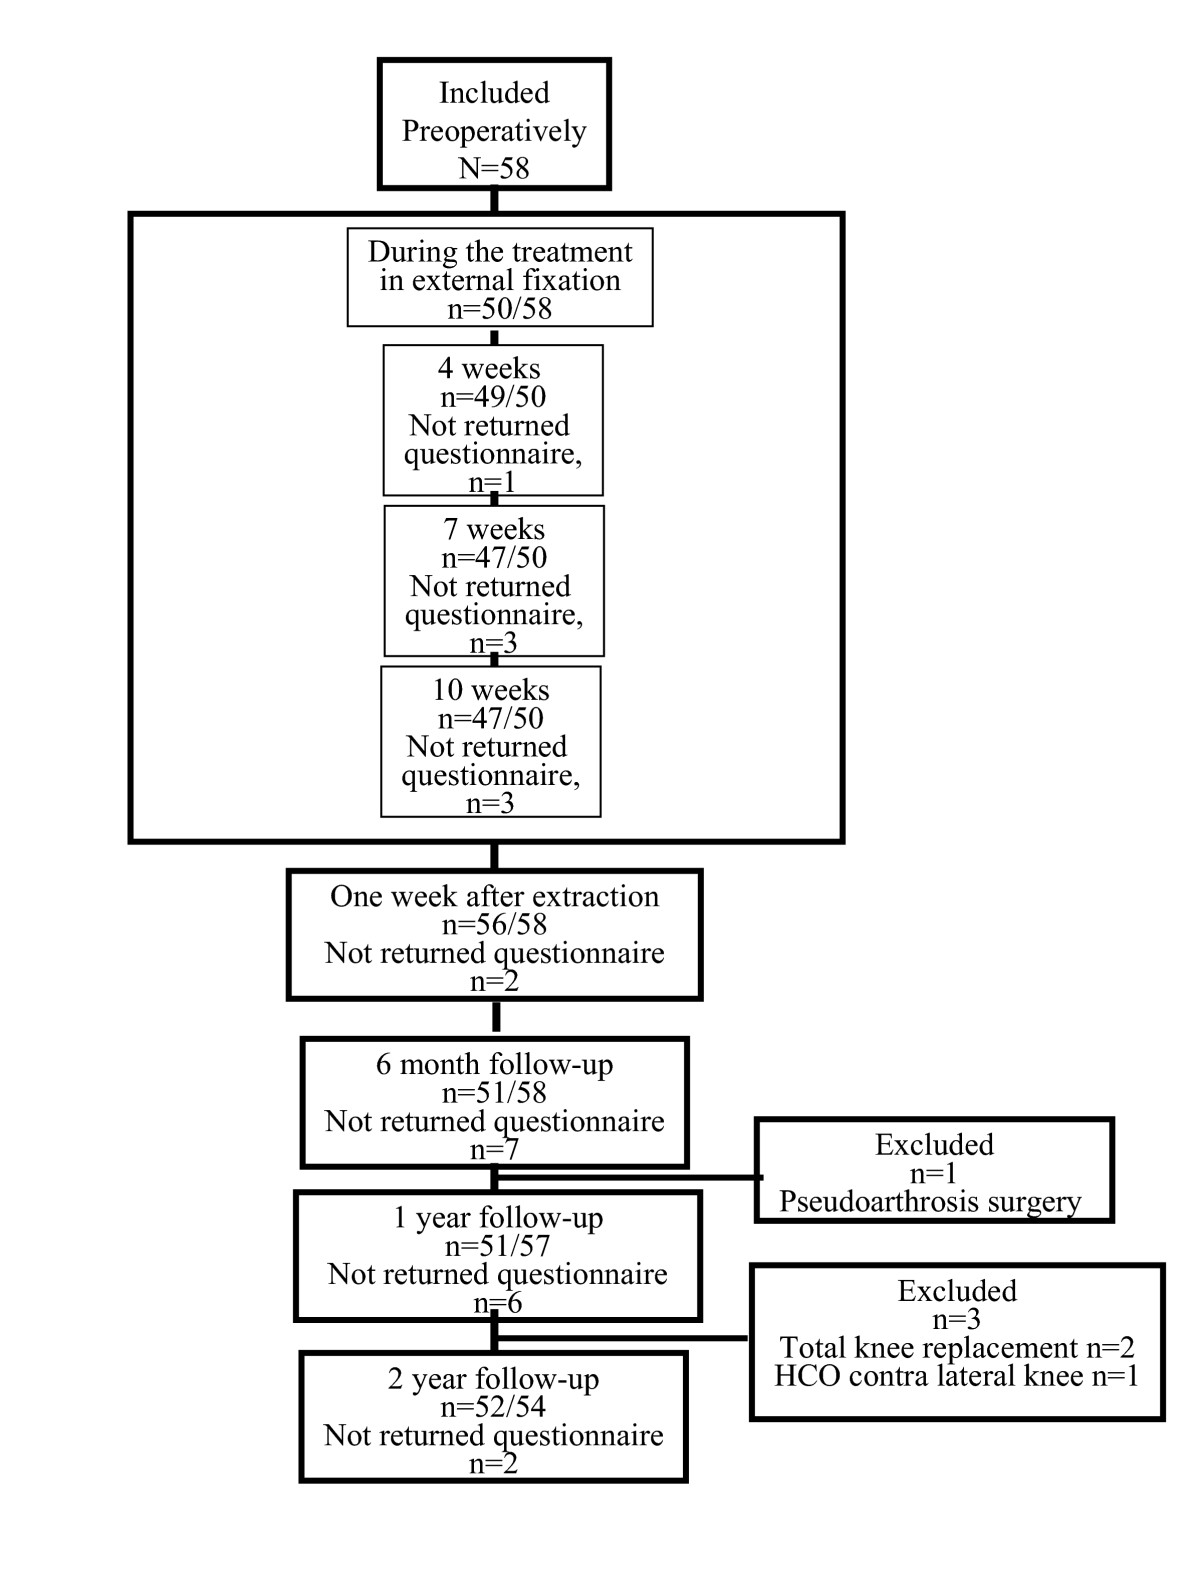 http://static-content.springer.com/image/art%3A10.1186%2F1471-2474-6-18/MediaObjects/12891_2004_Article_131_Fig2_HTML.jpg